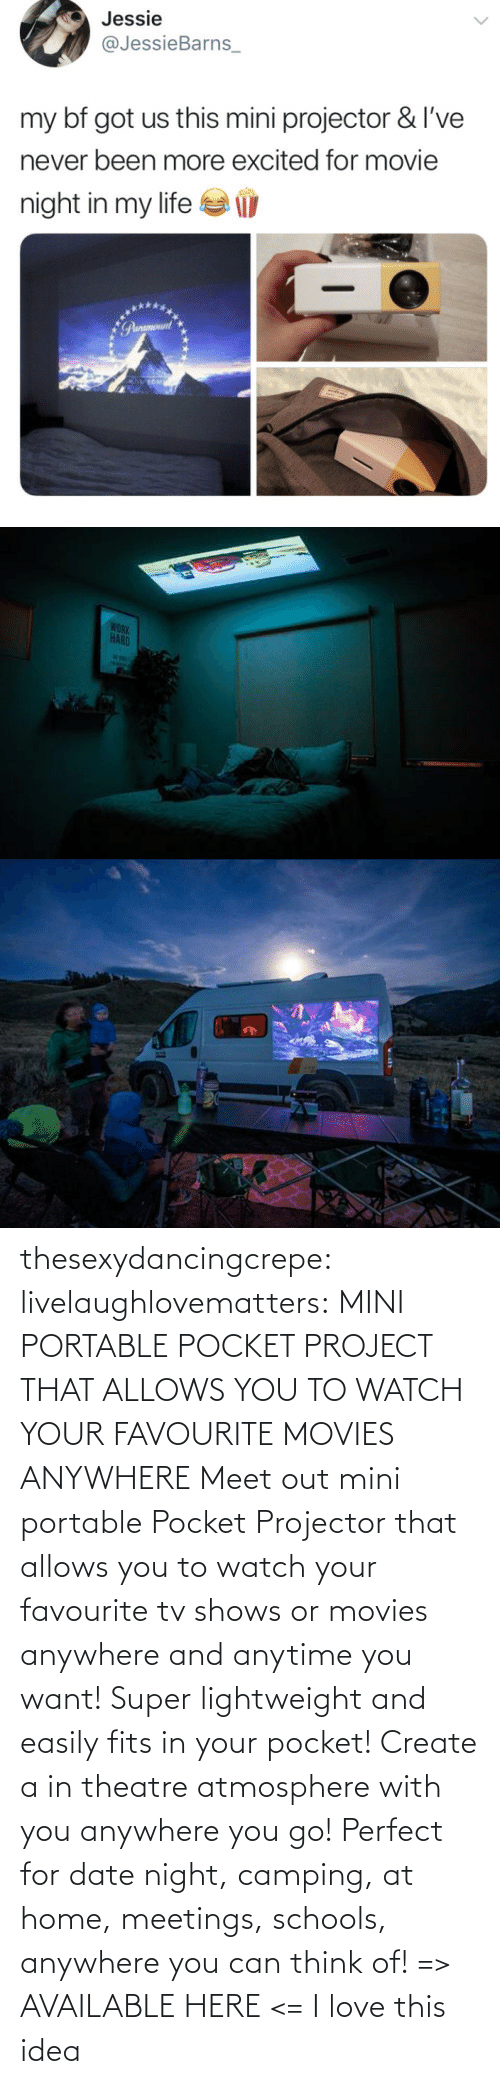 TV shows: thesexydancingcrepe: livelaughlovematters:   MINI PORTABLE POCKET PROJECT THAT ALLOWS YOU TO WATCH YOUR FAVOURITE MOVIES ANYWHERE Meet out mini portable Pocket Projector that allows you to watch your favourite tv shows or movies anywhere and anytime you want! Super lightweight and easily fits in your pocket! Create a in theatre atmosphere with you anywhere you go! Perfect for date night, camping, at home, meetings, schools, anywhere you can think of! => AVAILABLE HERE <=    I love this idea